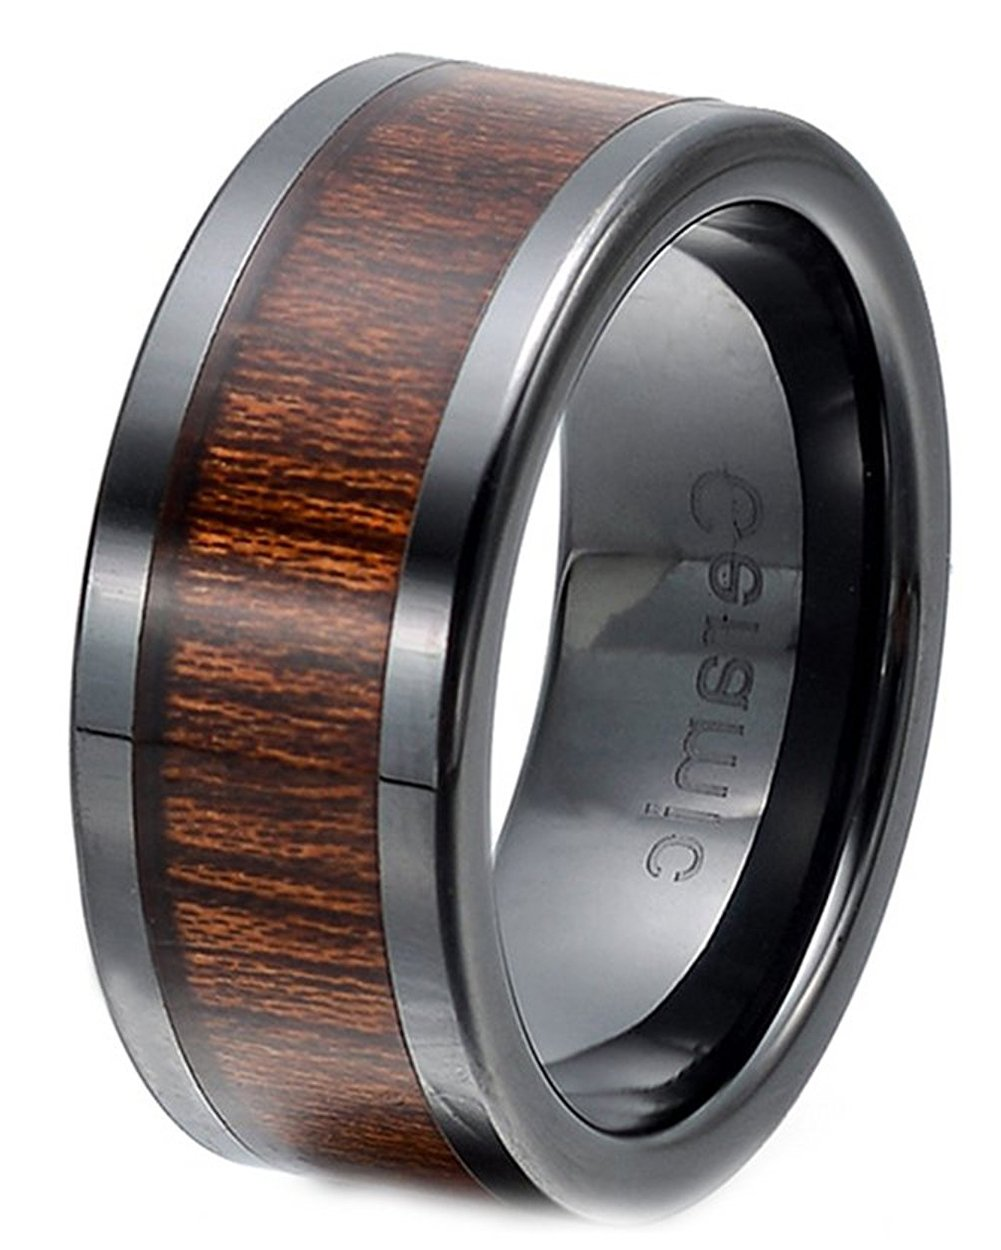 LILILEO Jewelry 8mm Domed Wood Grain Inlay Tungsten Ring Wooden Wedding Anniversary For Unisex Rings(Have Half Code)